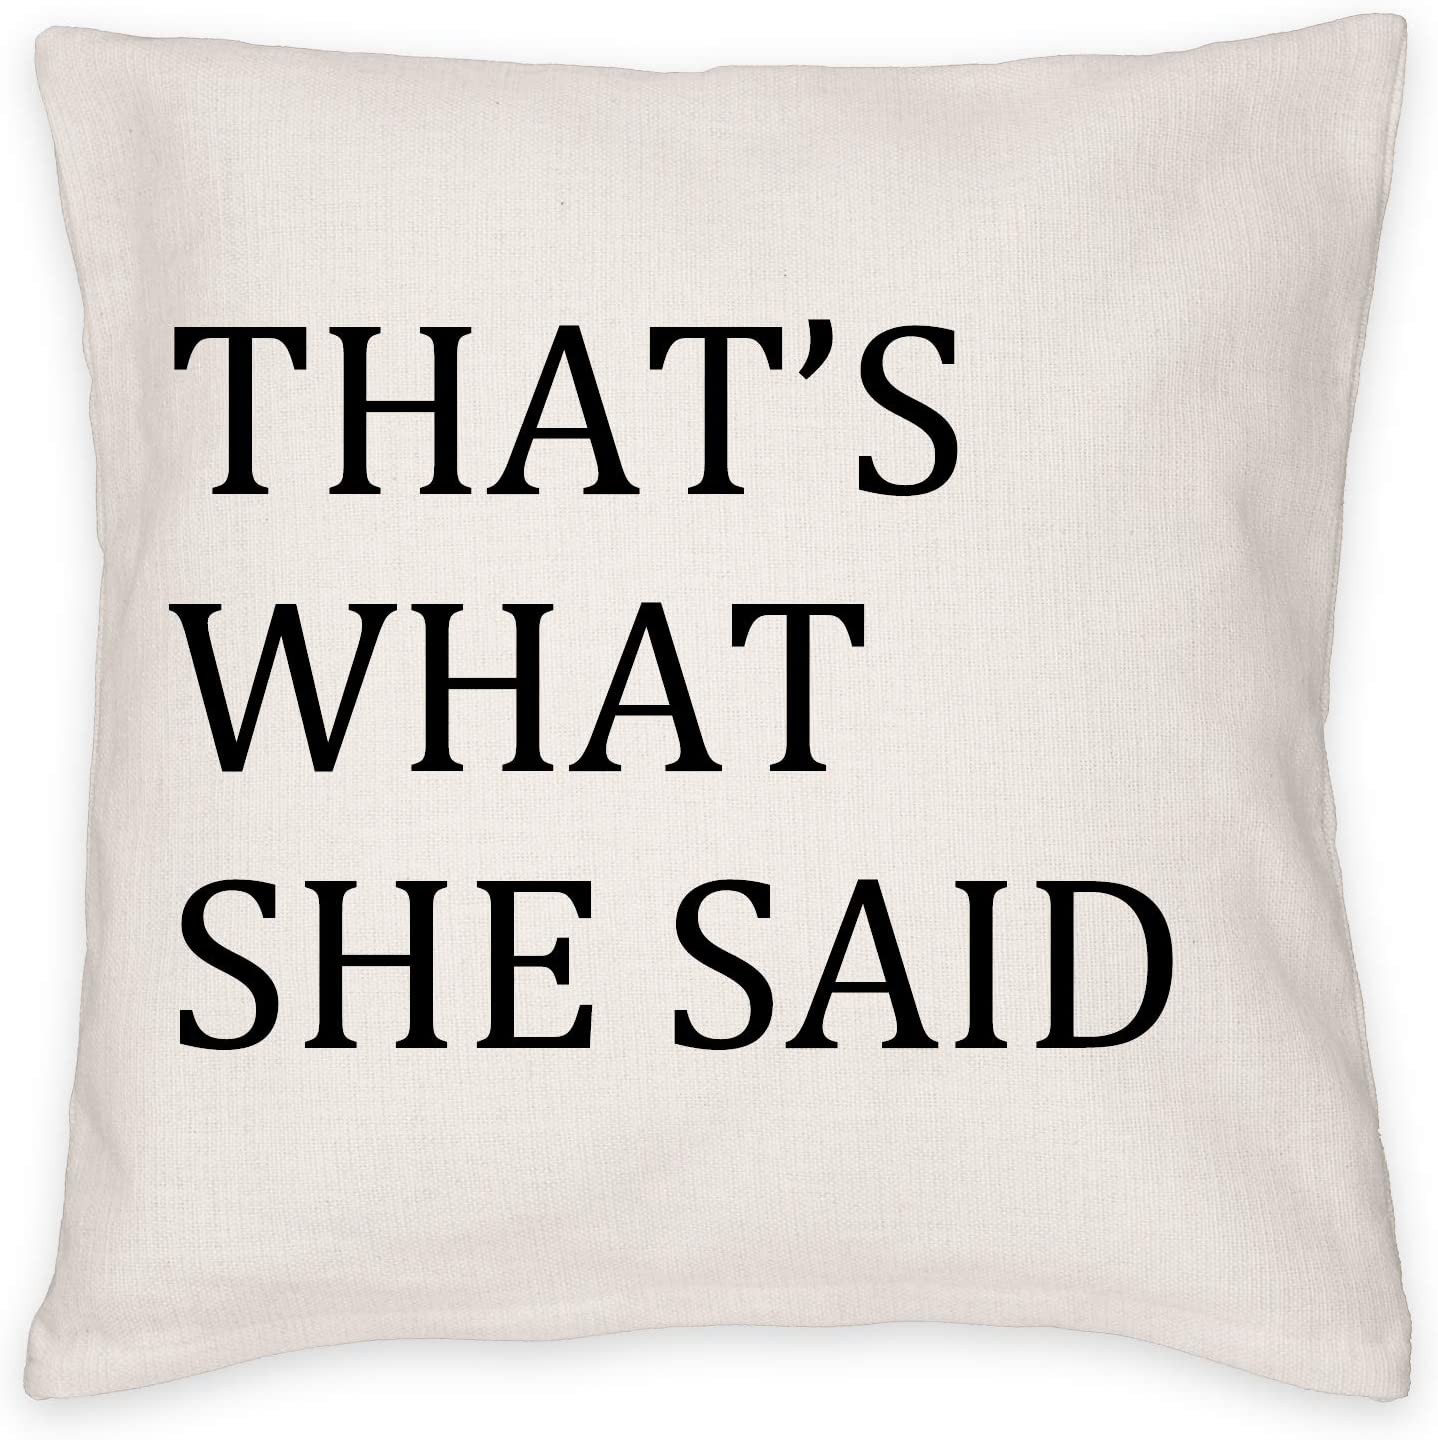 MTWXH Throw Pillow Case, The Office That's What She Said 18x18 Inch Decorate Pillow Cover, The Office Tv Show Merchandise Cushion Cover for Home Decor, Decoration Gifts for TV Show Fans